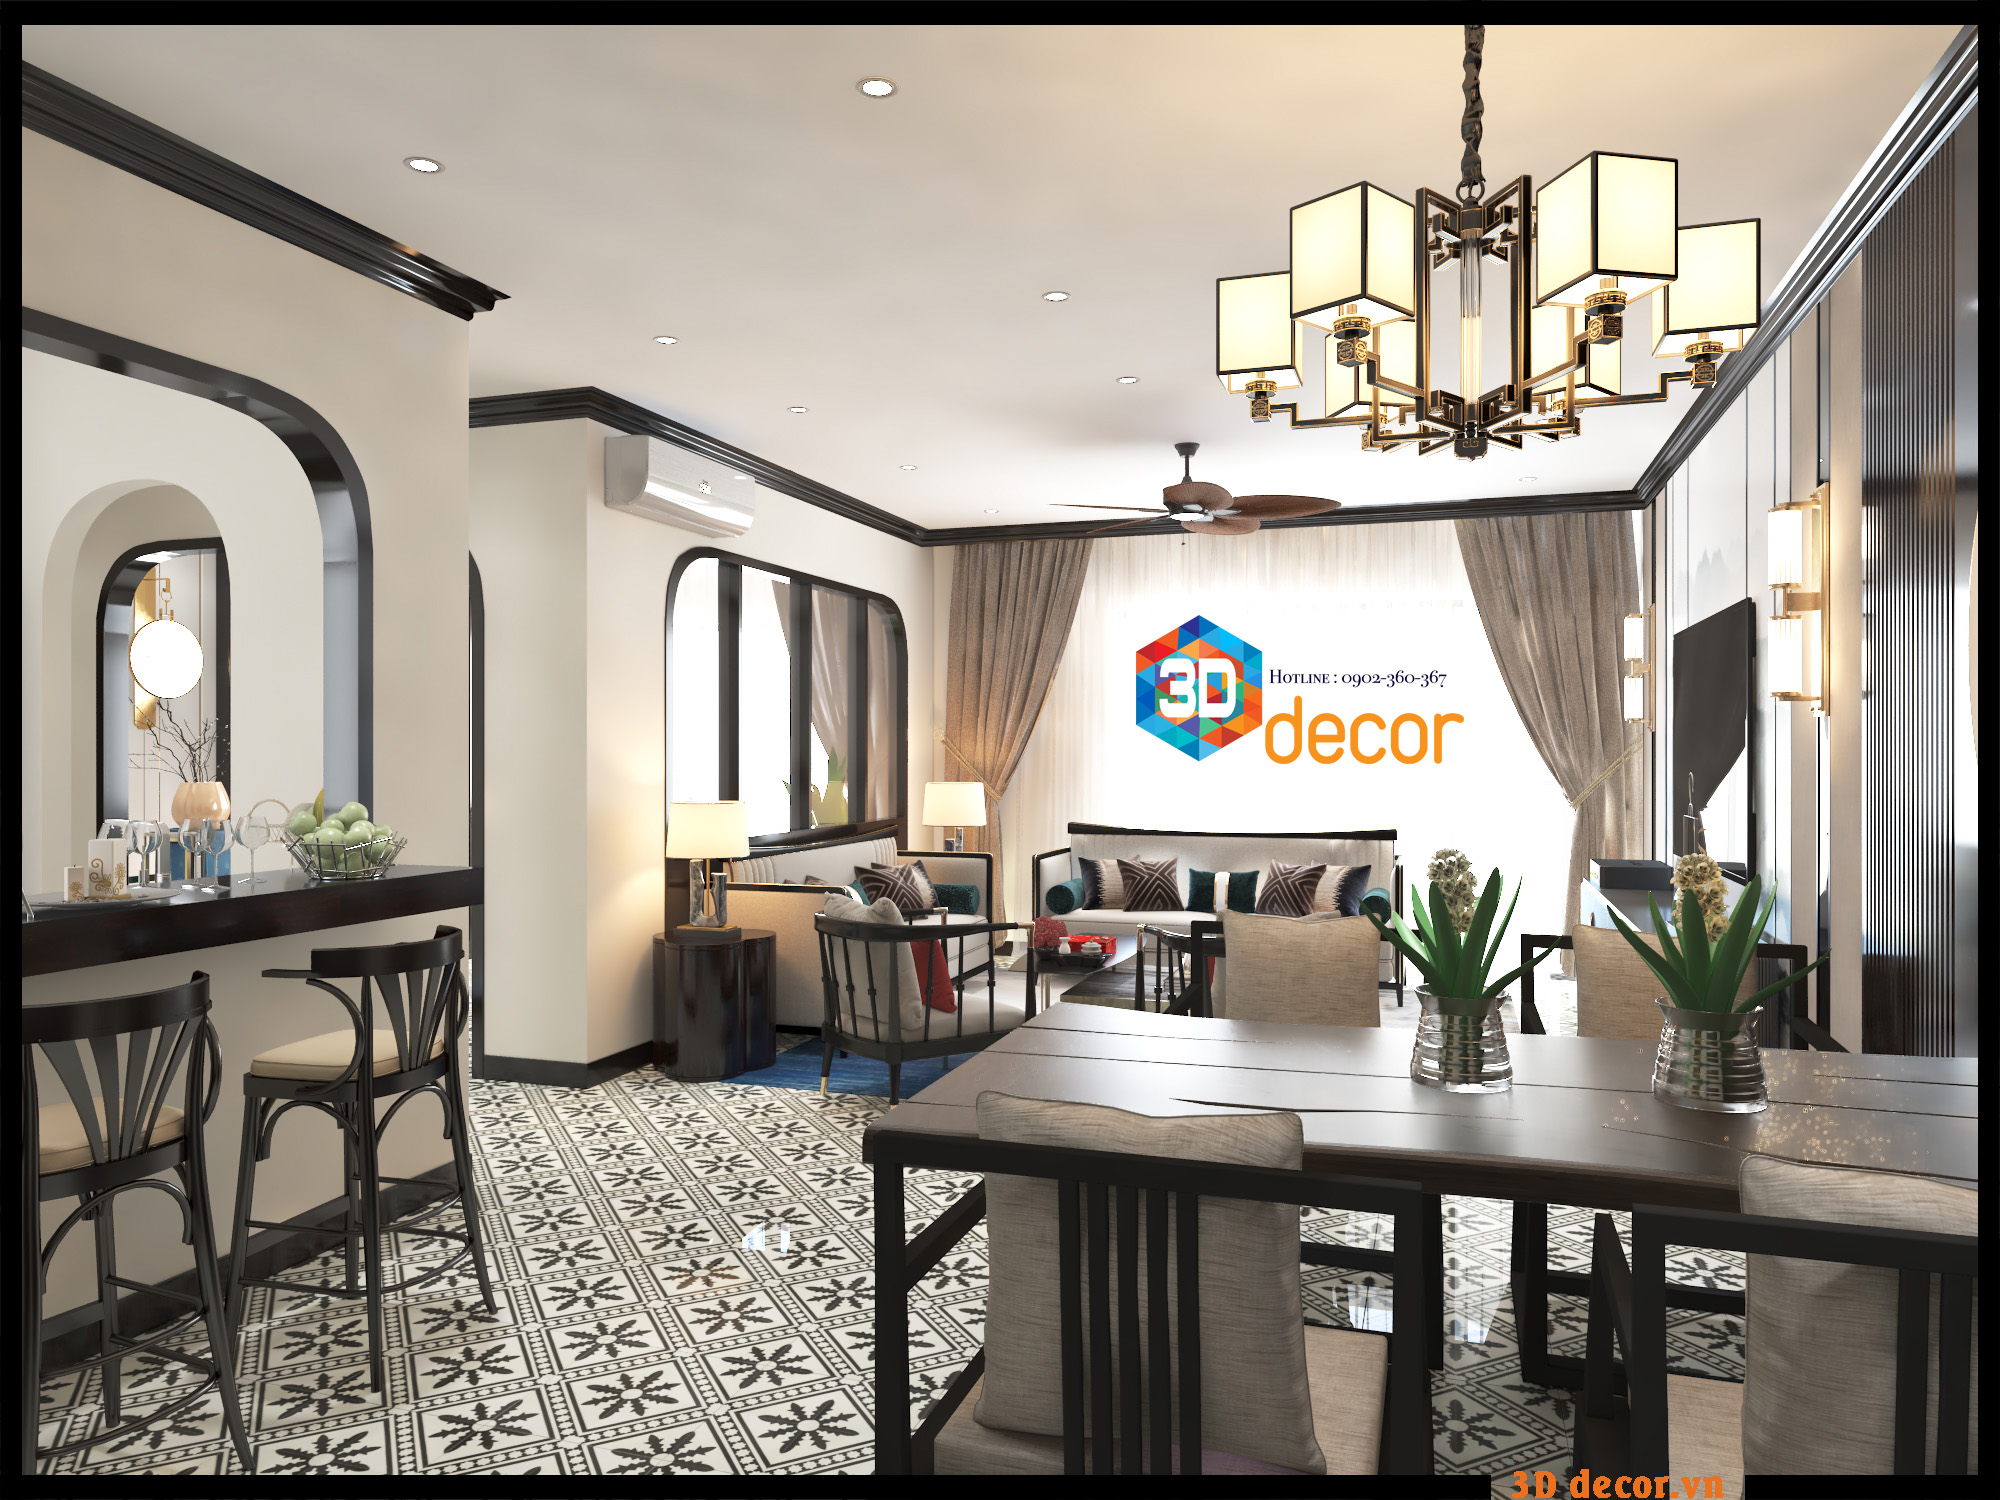 3D DECOR's design - Indochina